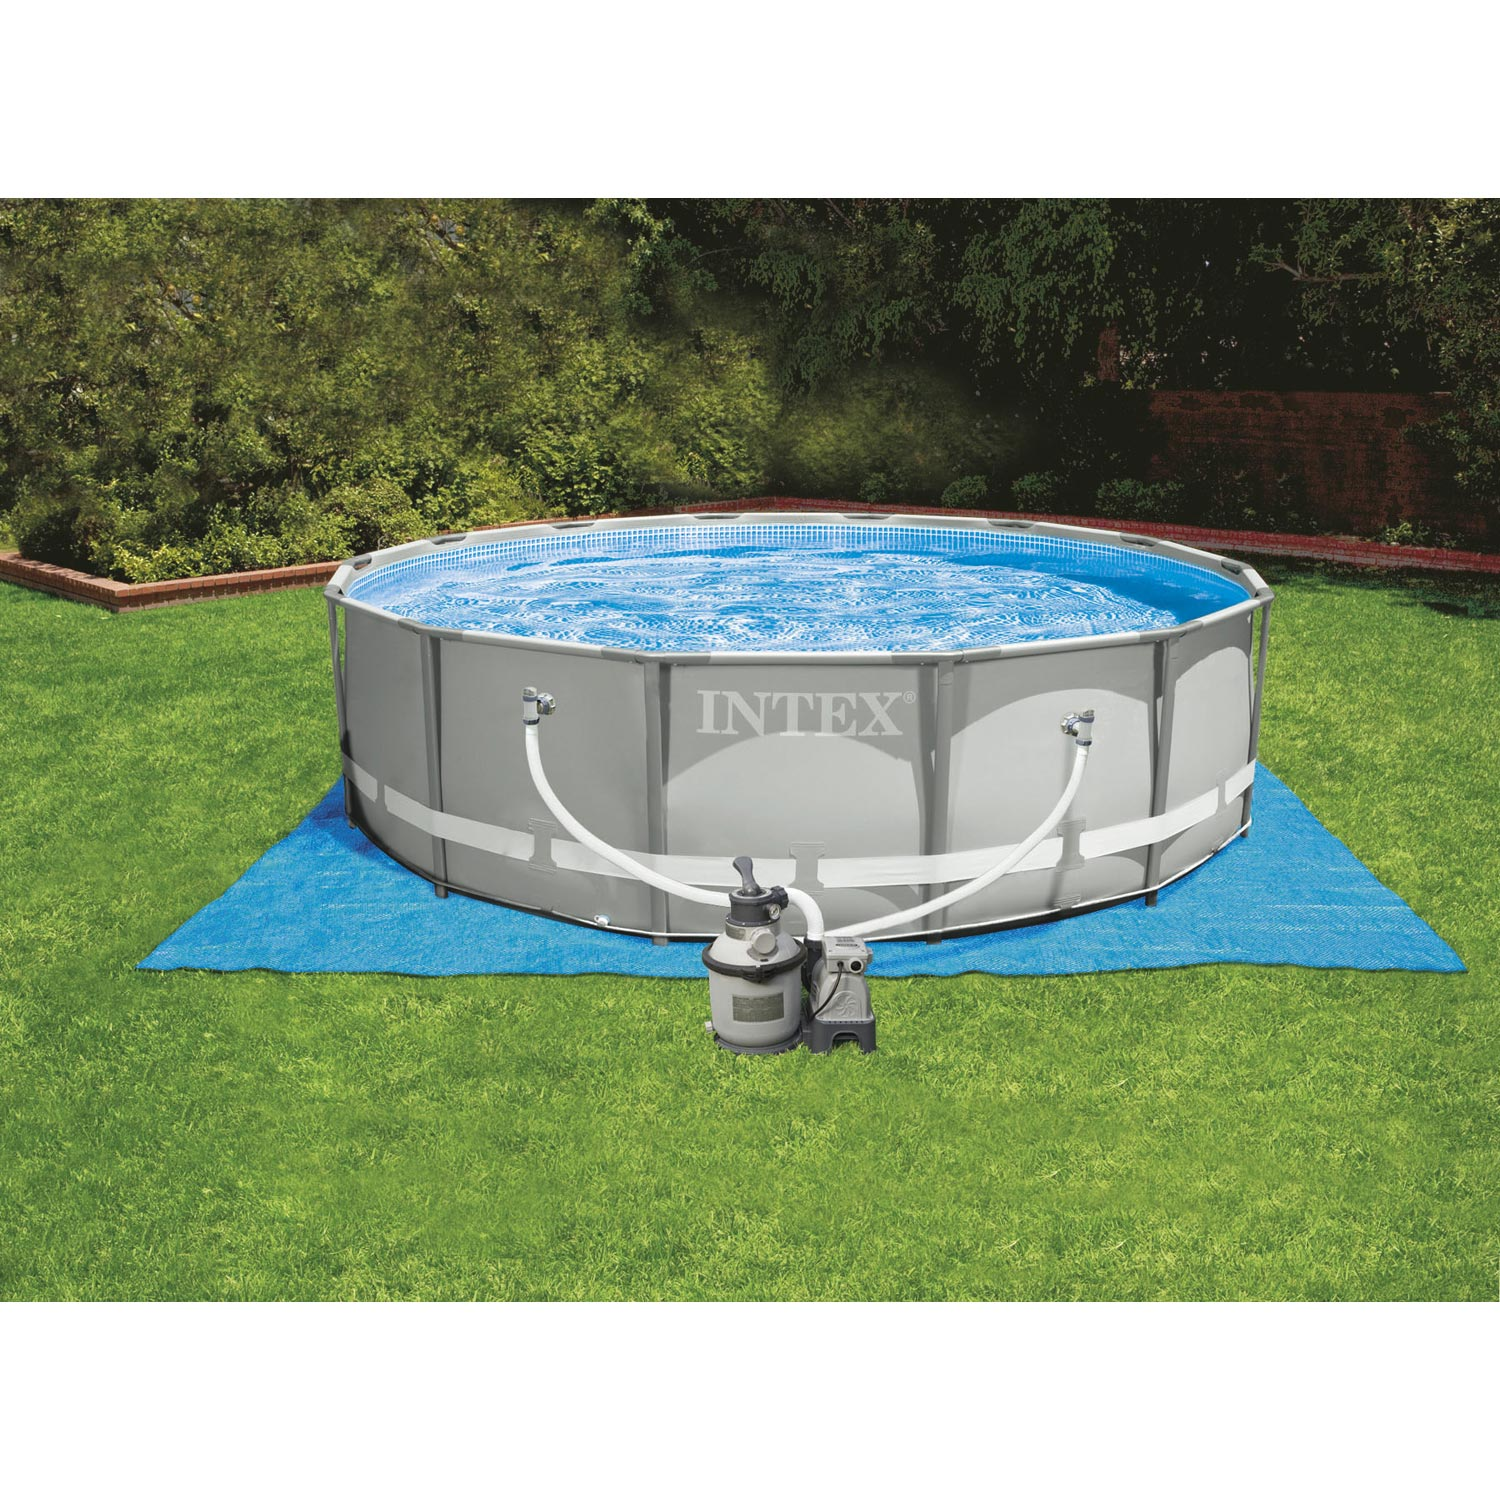 Piscine hors sol autoportante tubulaire ultraframe intex for Piscine hors sol intex